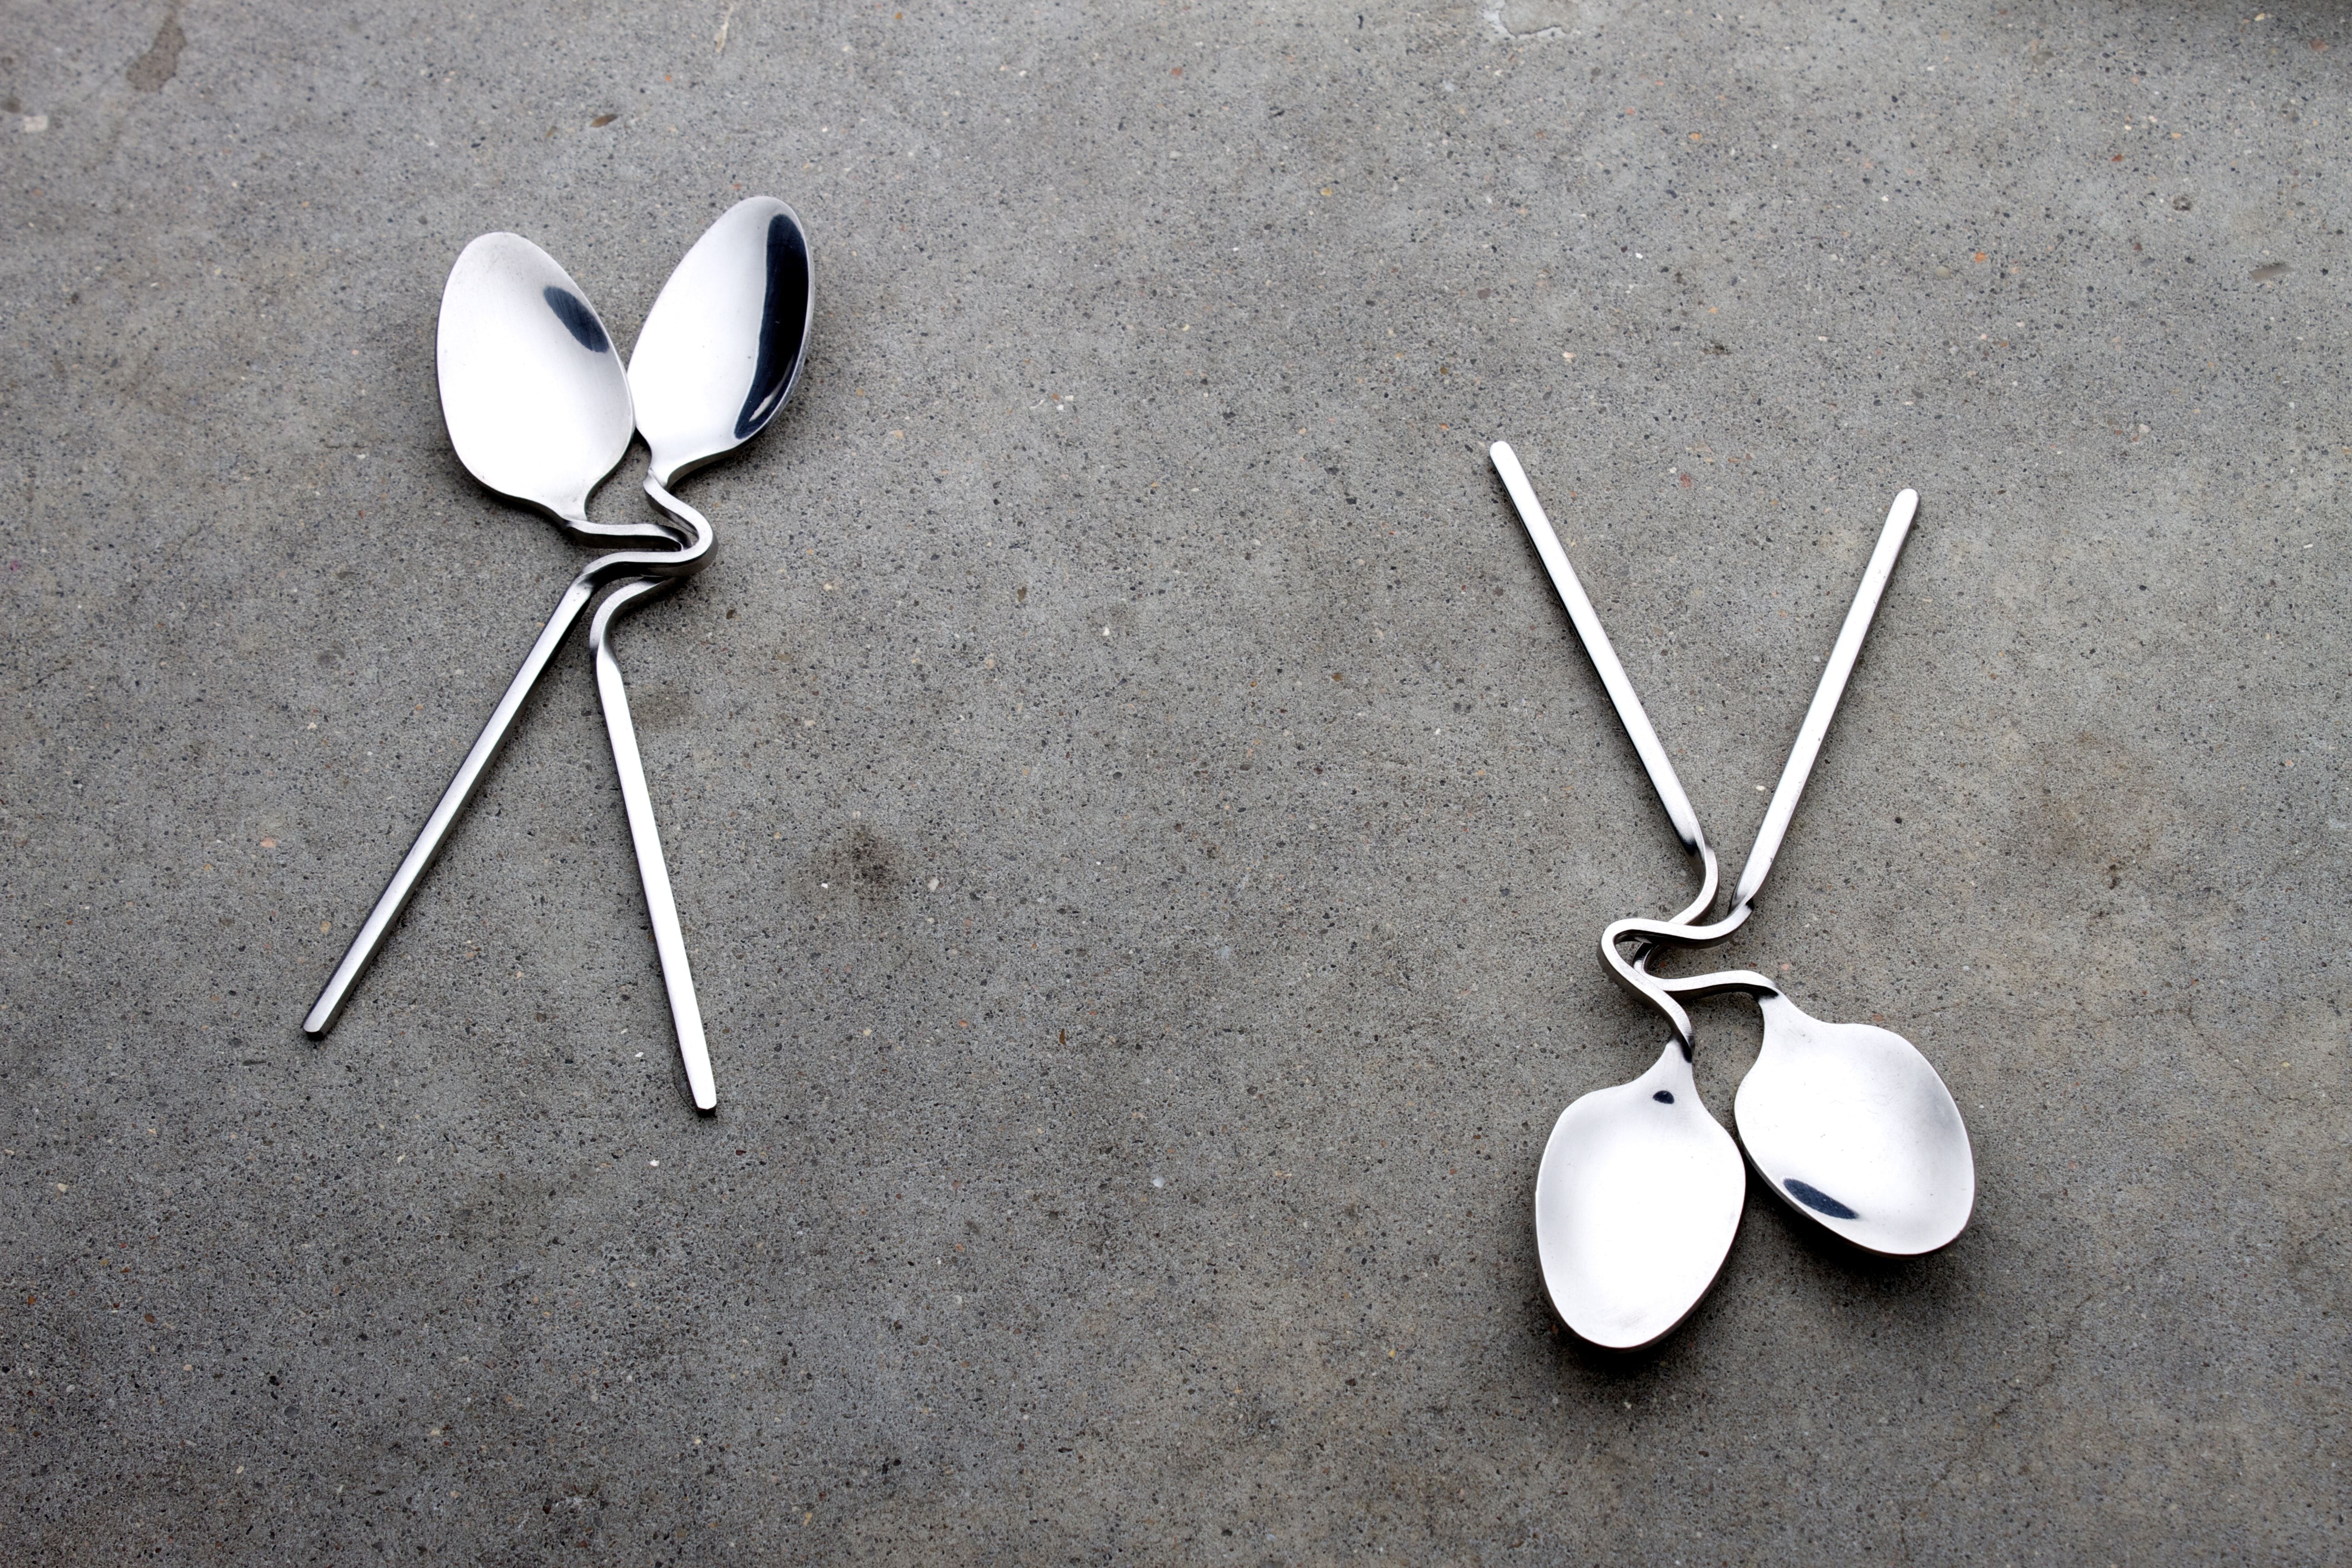 two grey stainless steel spoons